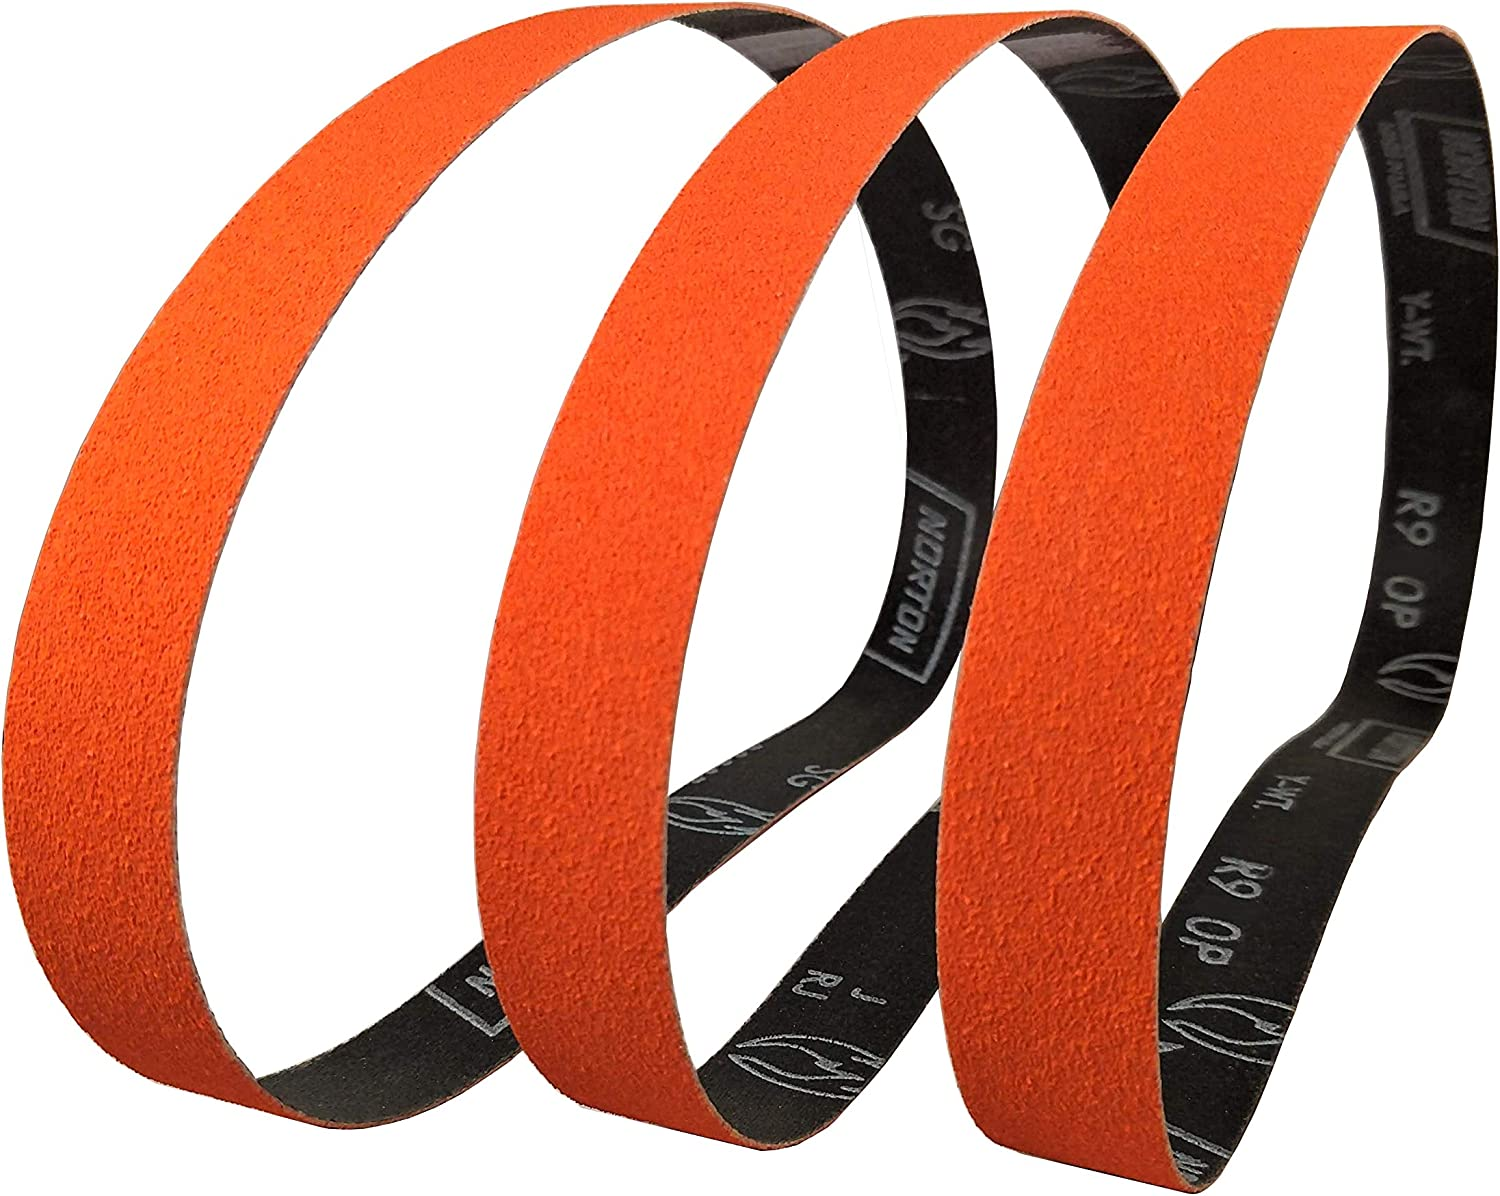 Norton SG Blaze Plus 1x30 60 Grit Ceramic Sanding Sharpening Belts 3 Pk Long Lasting